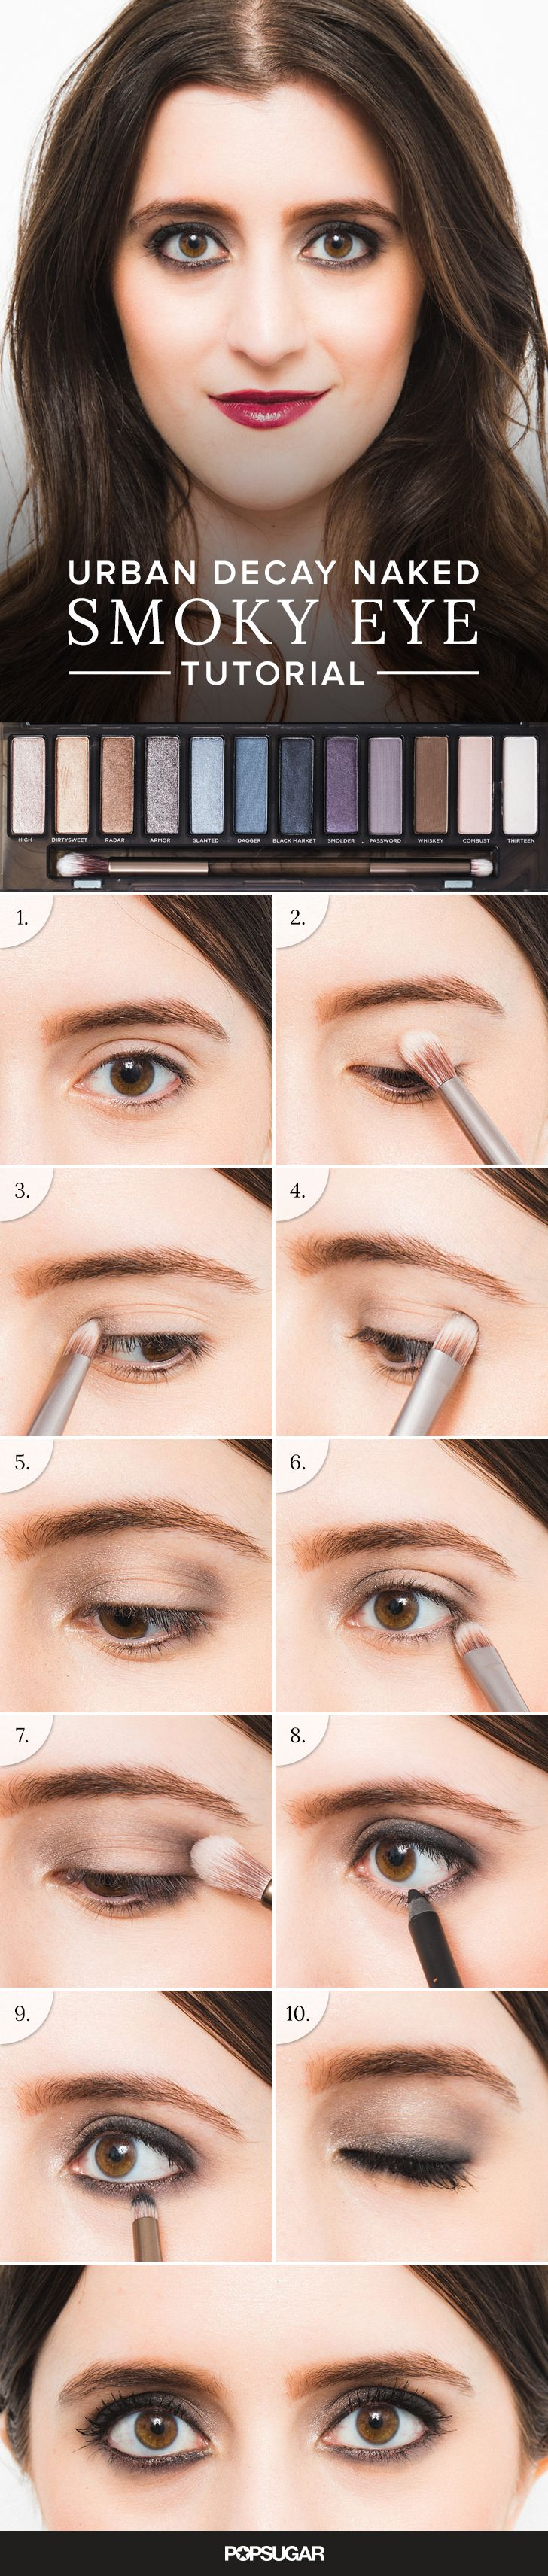 We teamed up with makeup artist Pepper Bass to create the ultimate smoky eye look using only shades in the new Urban Decay Naked palette. Here are a few smoky eye tricks to avoid that dreaded blackout, raccoon look: prime lids, apply a matte base, highlight inner corners, mark the outer corners, blend and smudge!